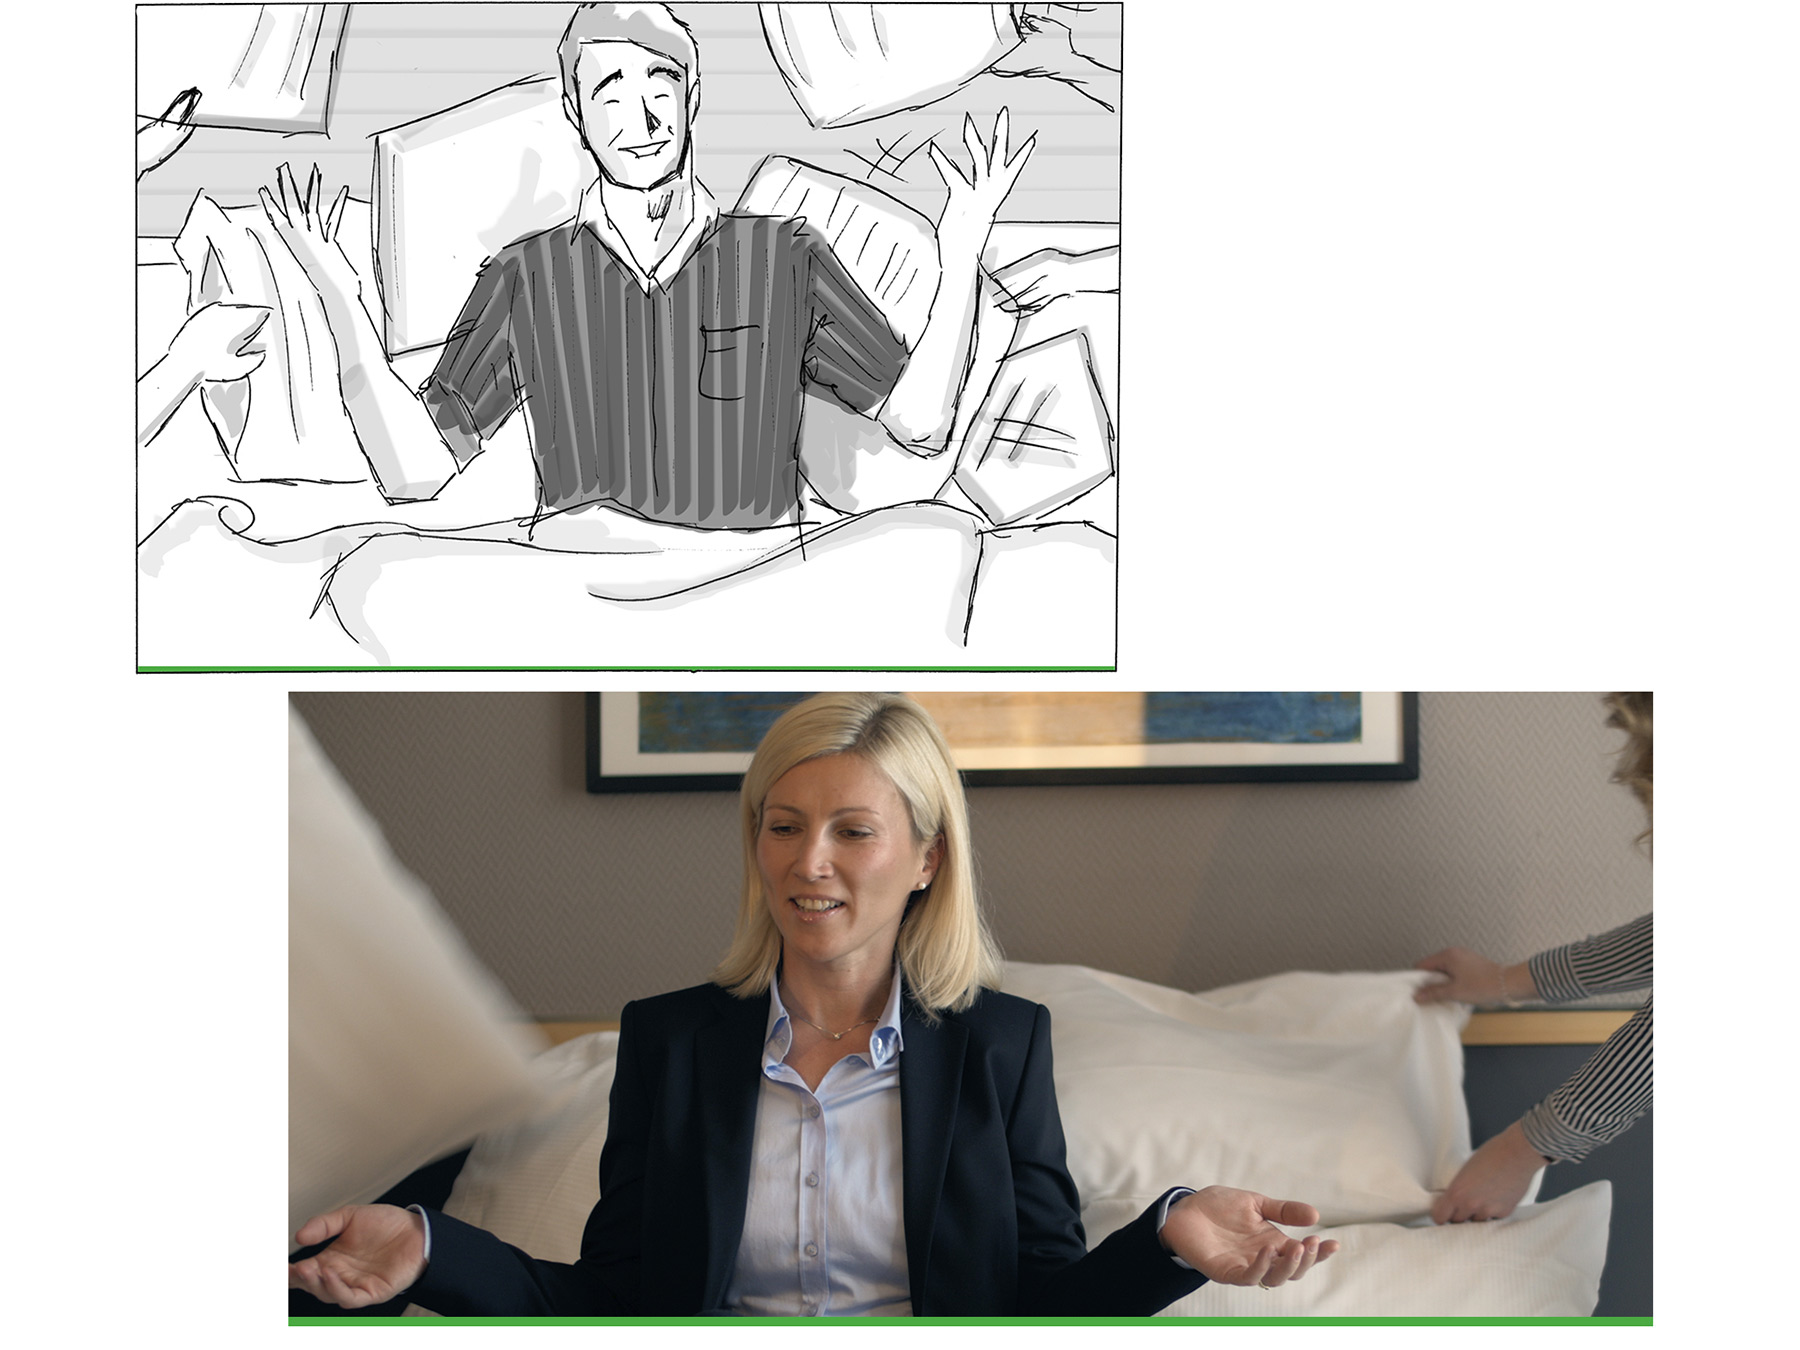 AuD Referenzen HolidayInn Imagefilm Kreation